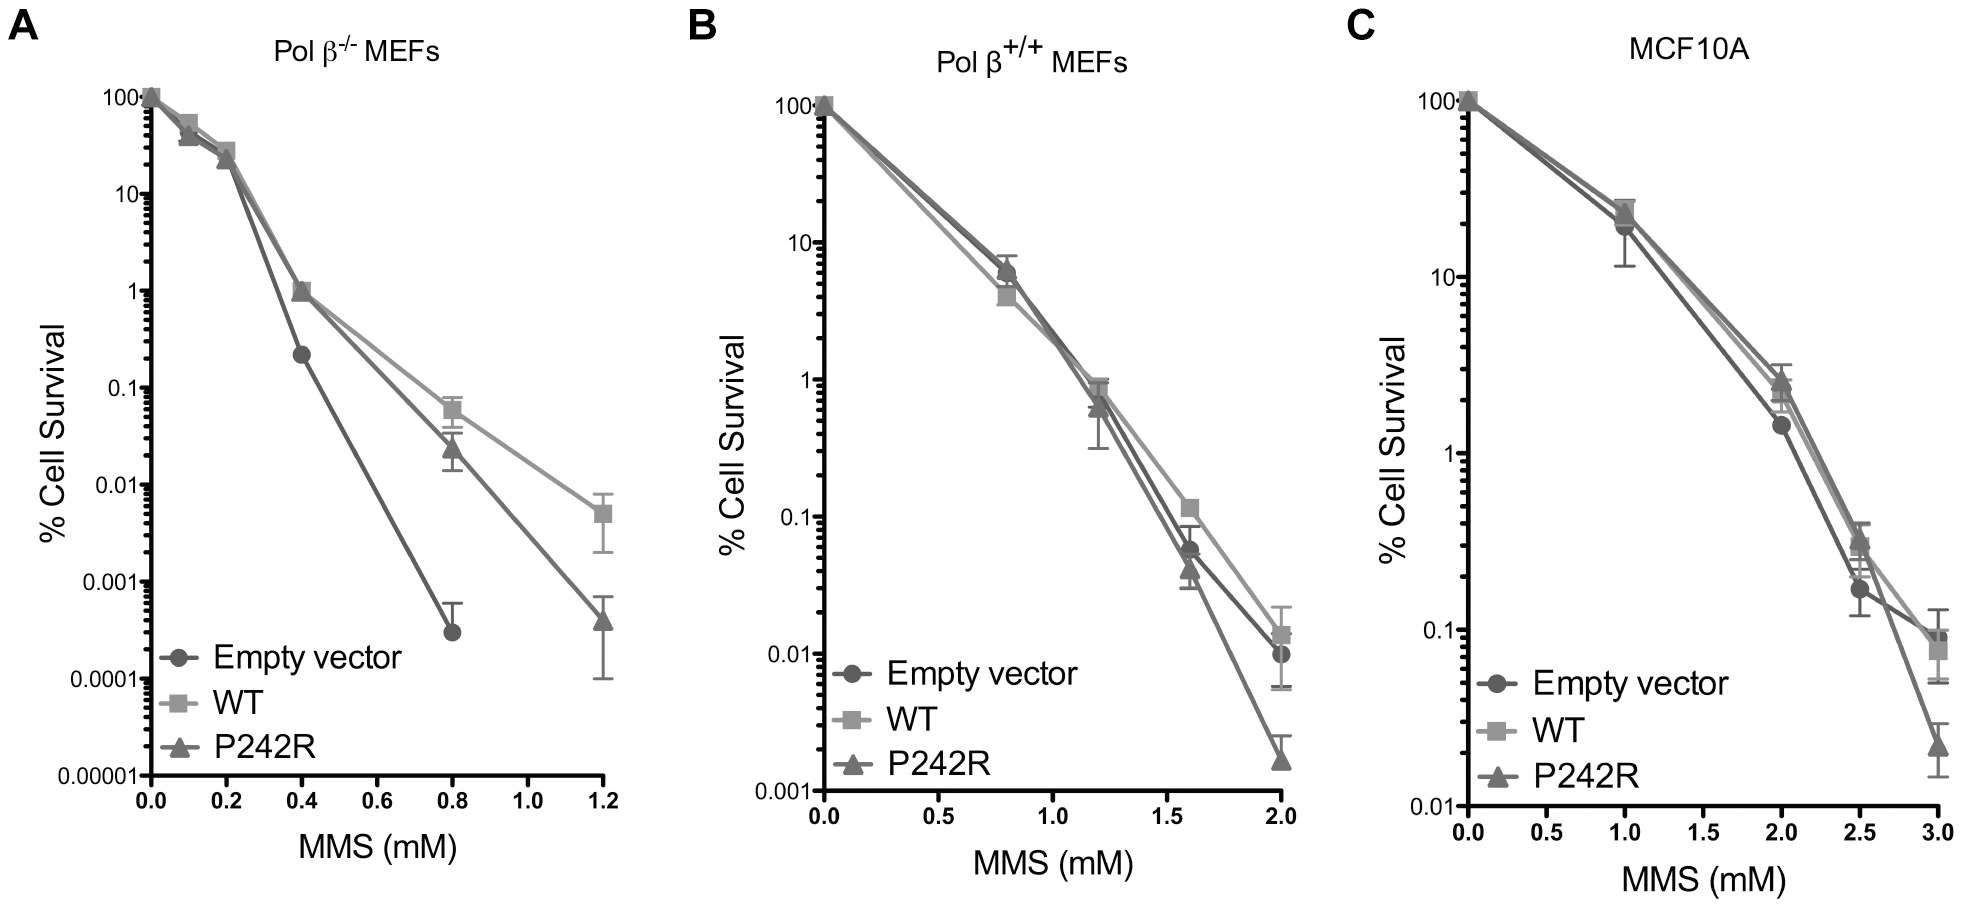 P242R Pol β confers slight sensitivity to MMS compared to WT.